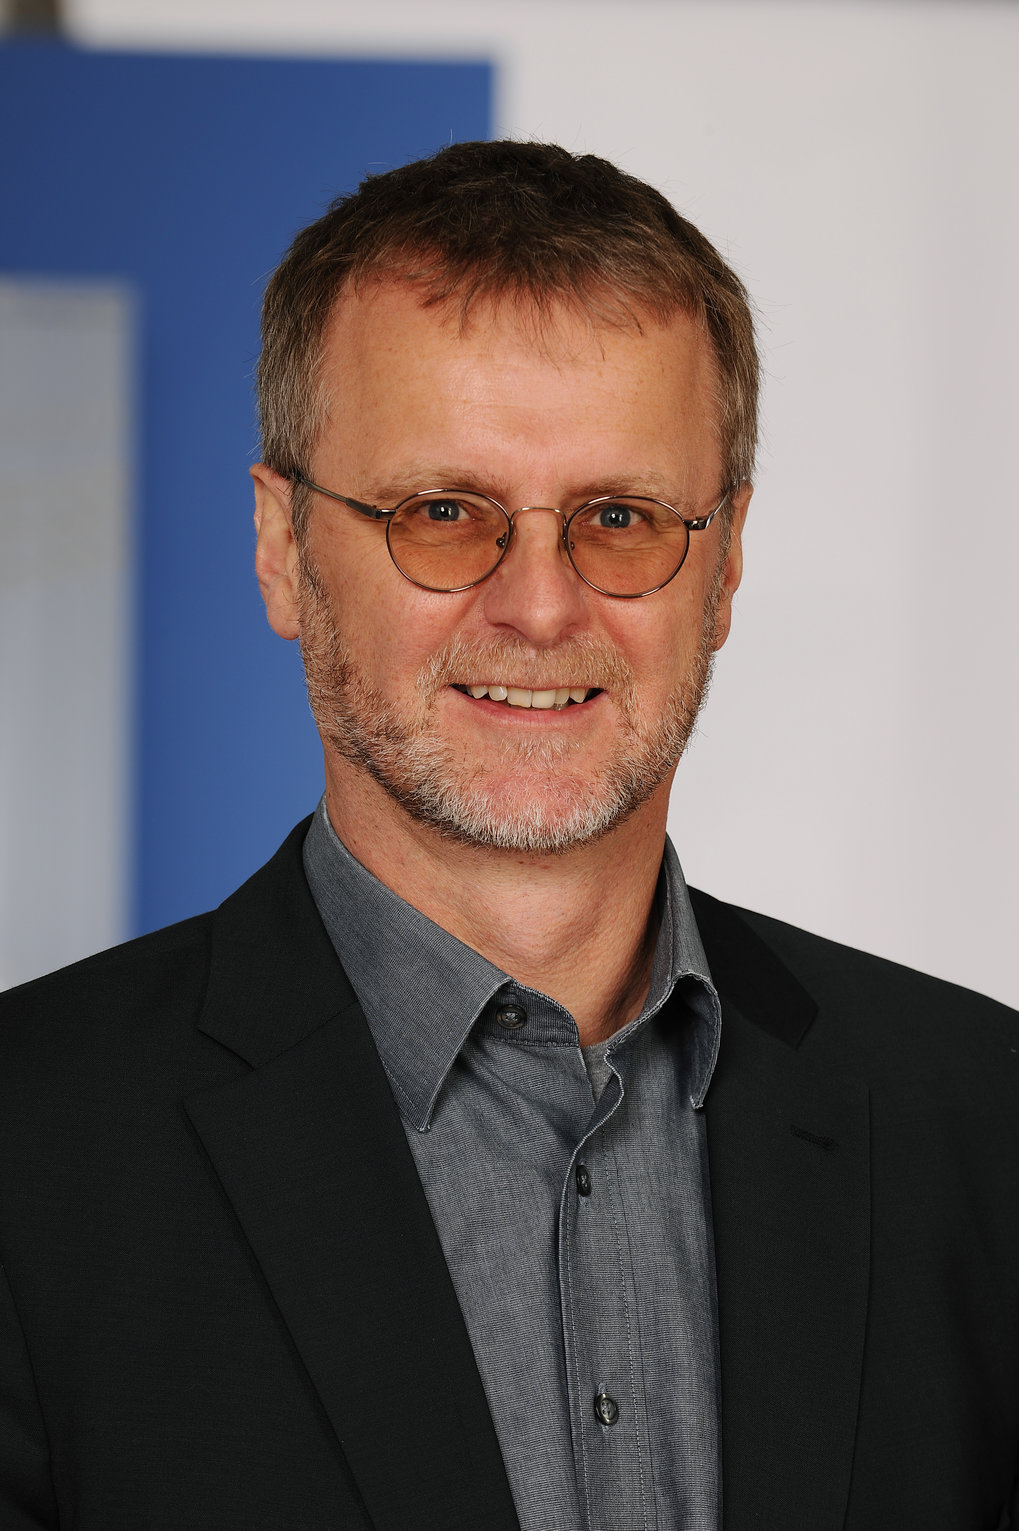 Stephan Borrmann